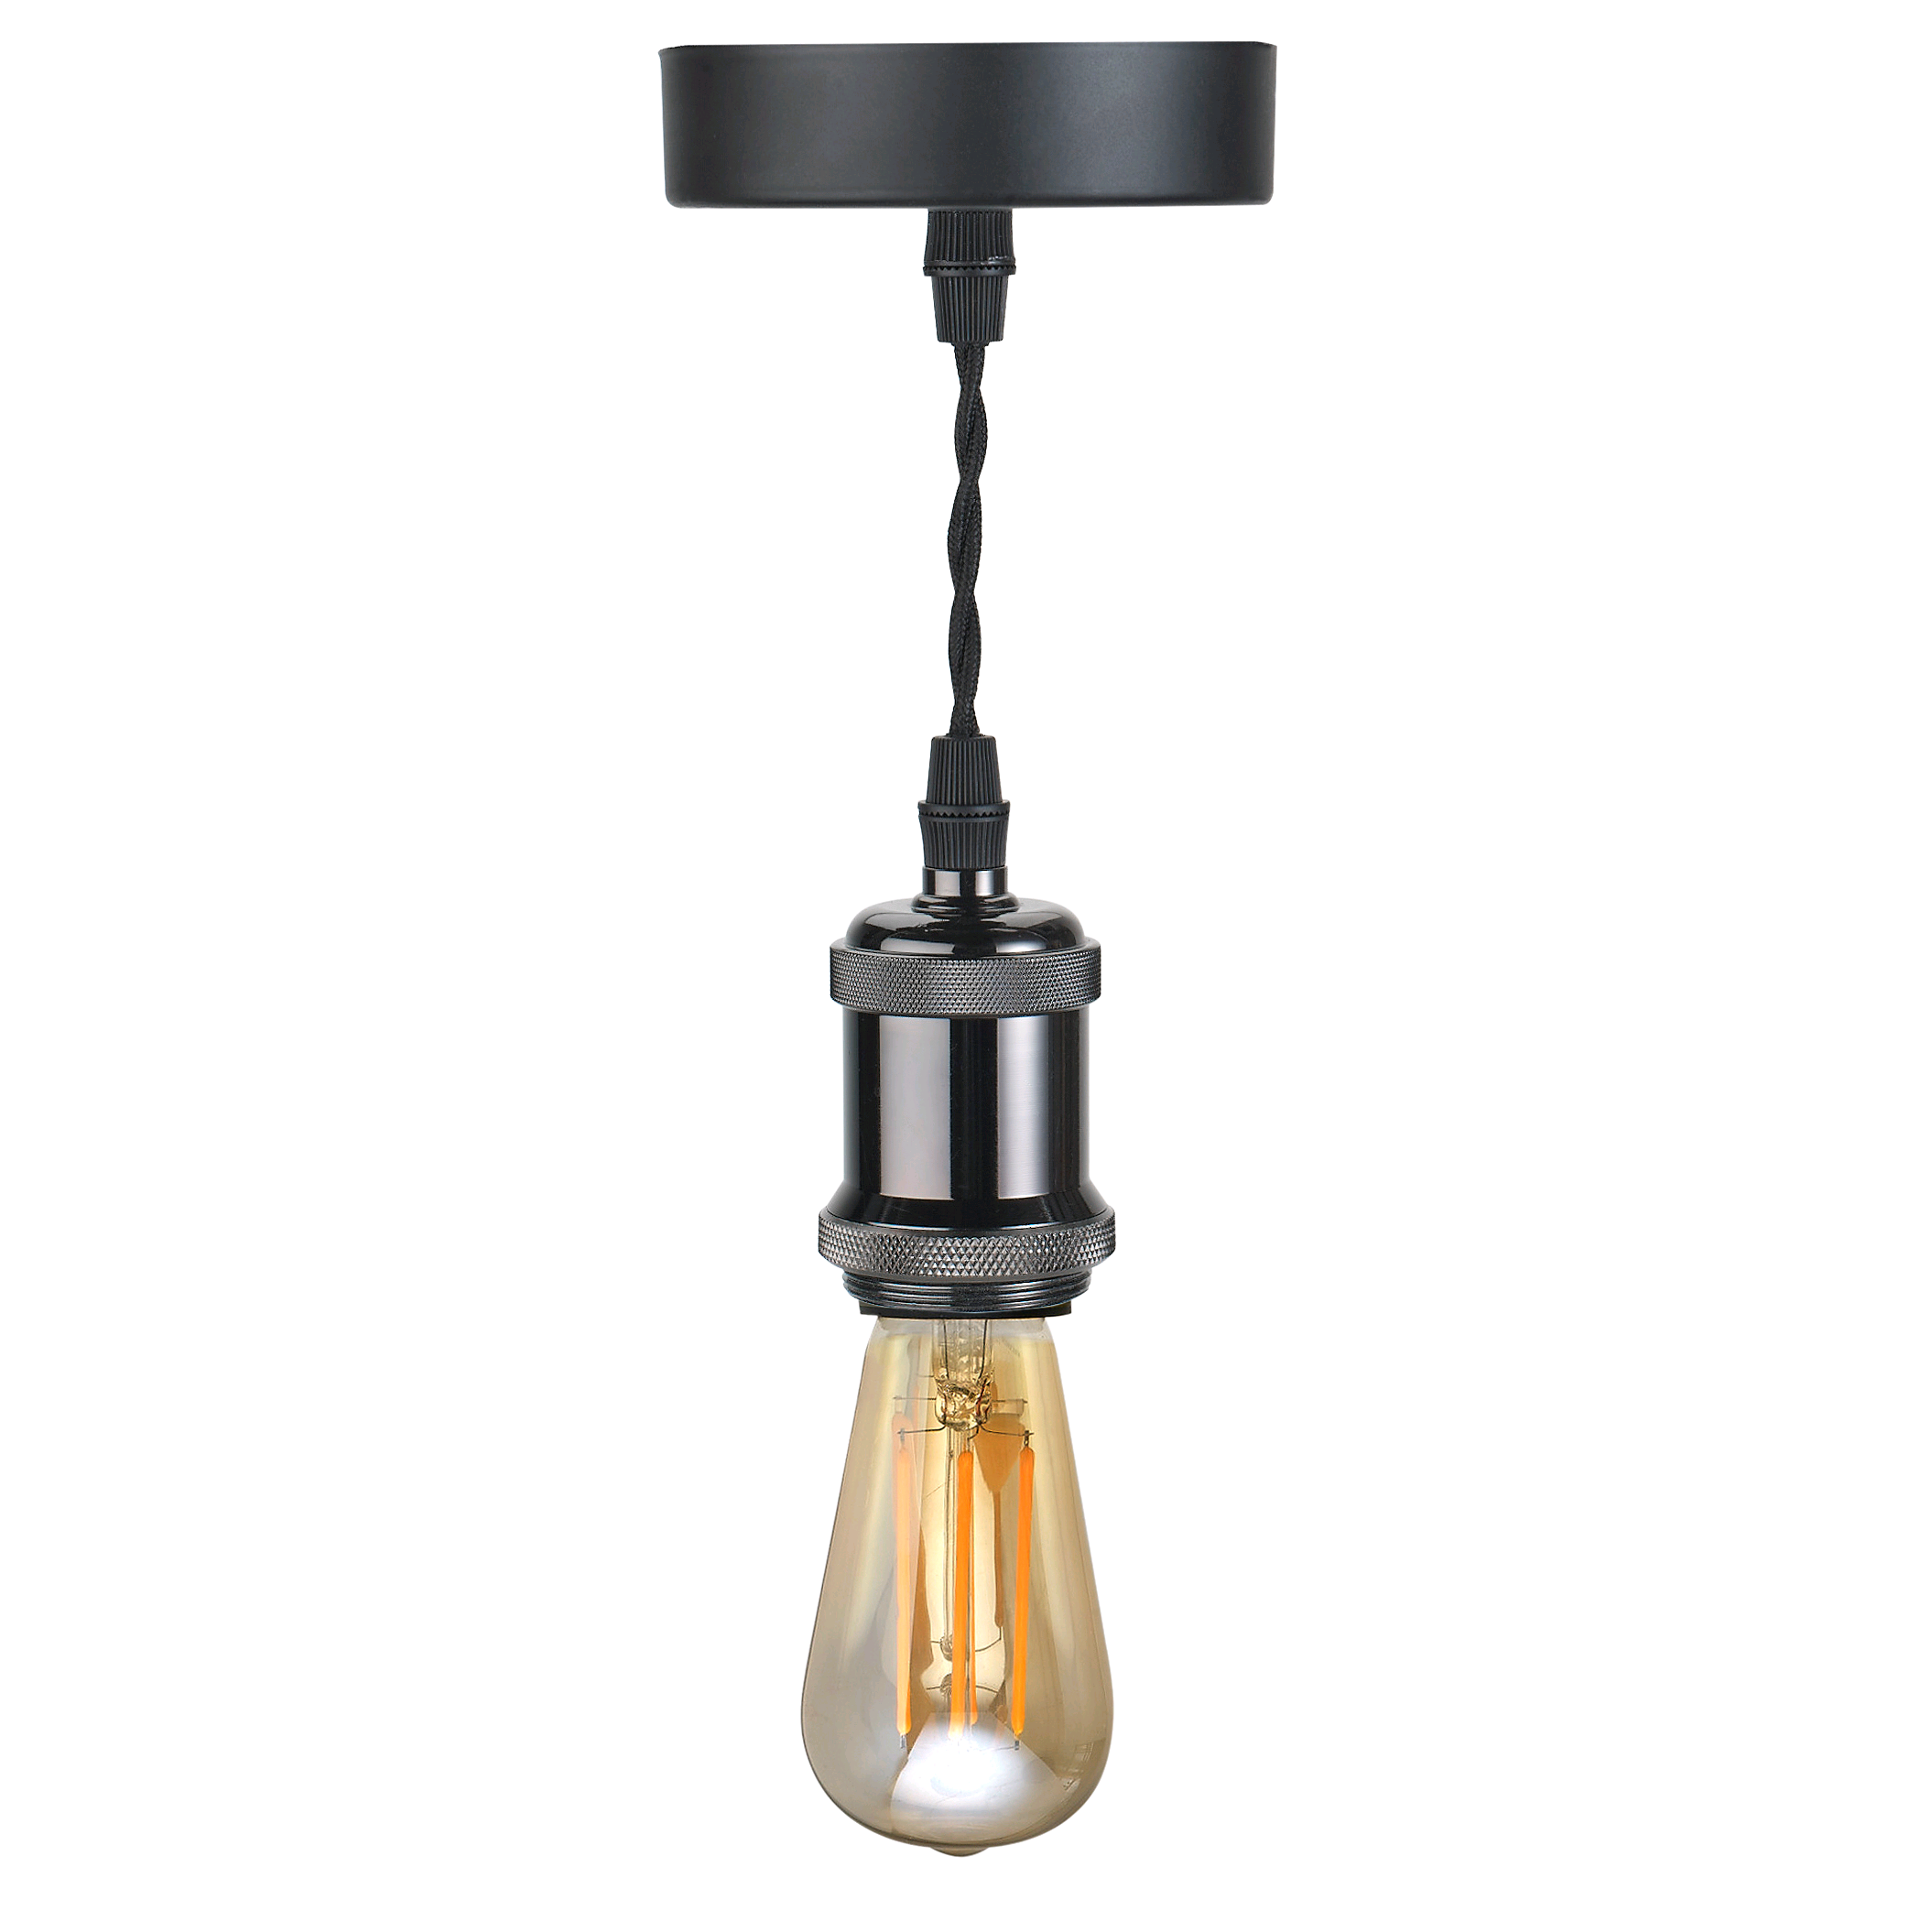 Bell Vintage Pendant Light Gunmetal Black